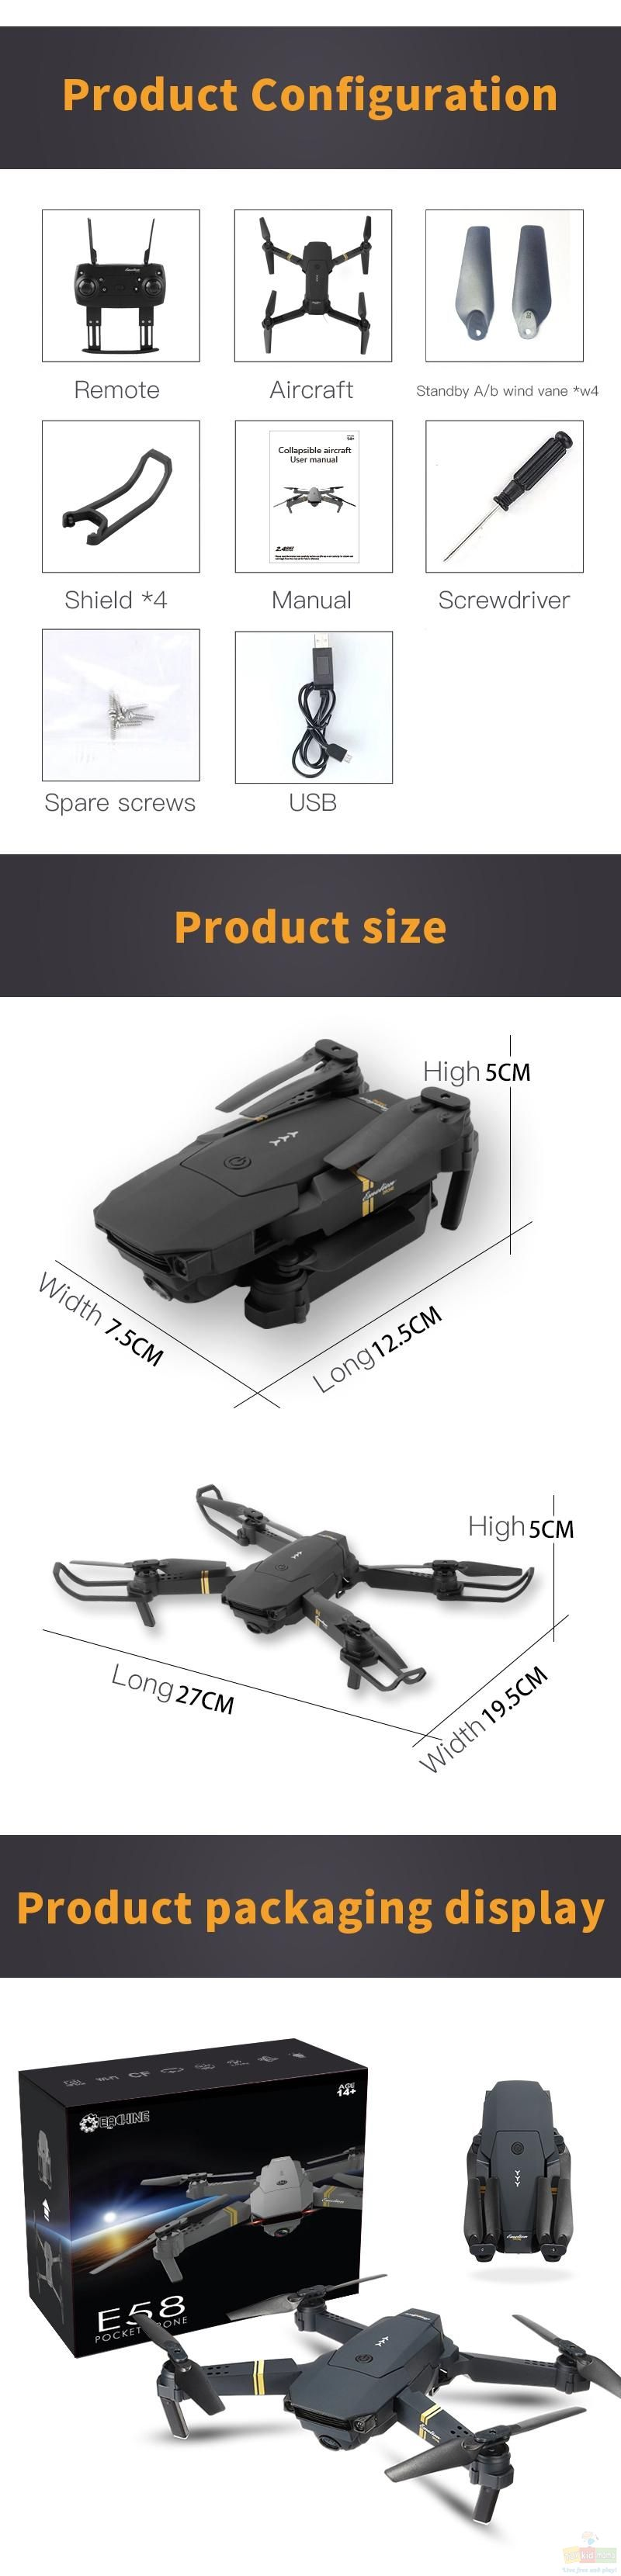 Eachine E58 Manual : eachine, manual, Eachine, Angle, 1080P/720P/480P, Camera, Hight, Foldable, Quadcopter, Drone, Camera,, Quadcopter,